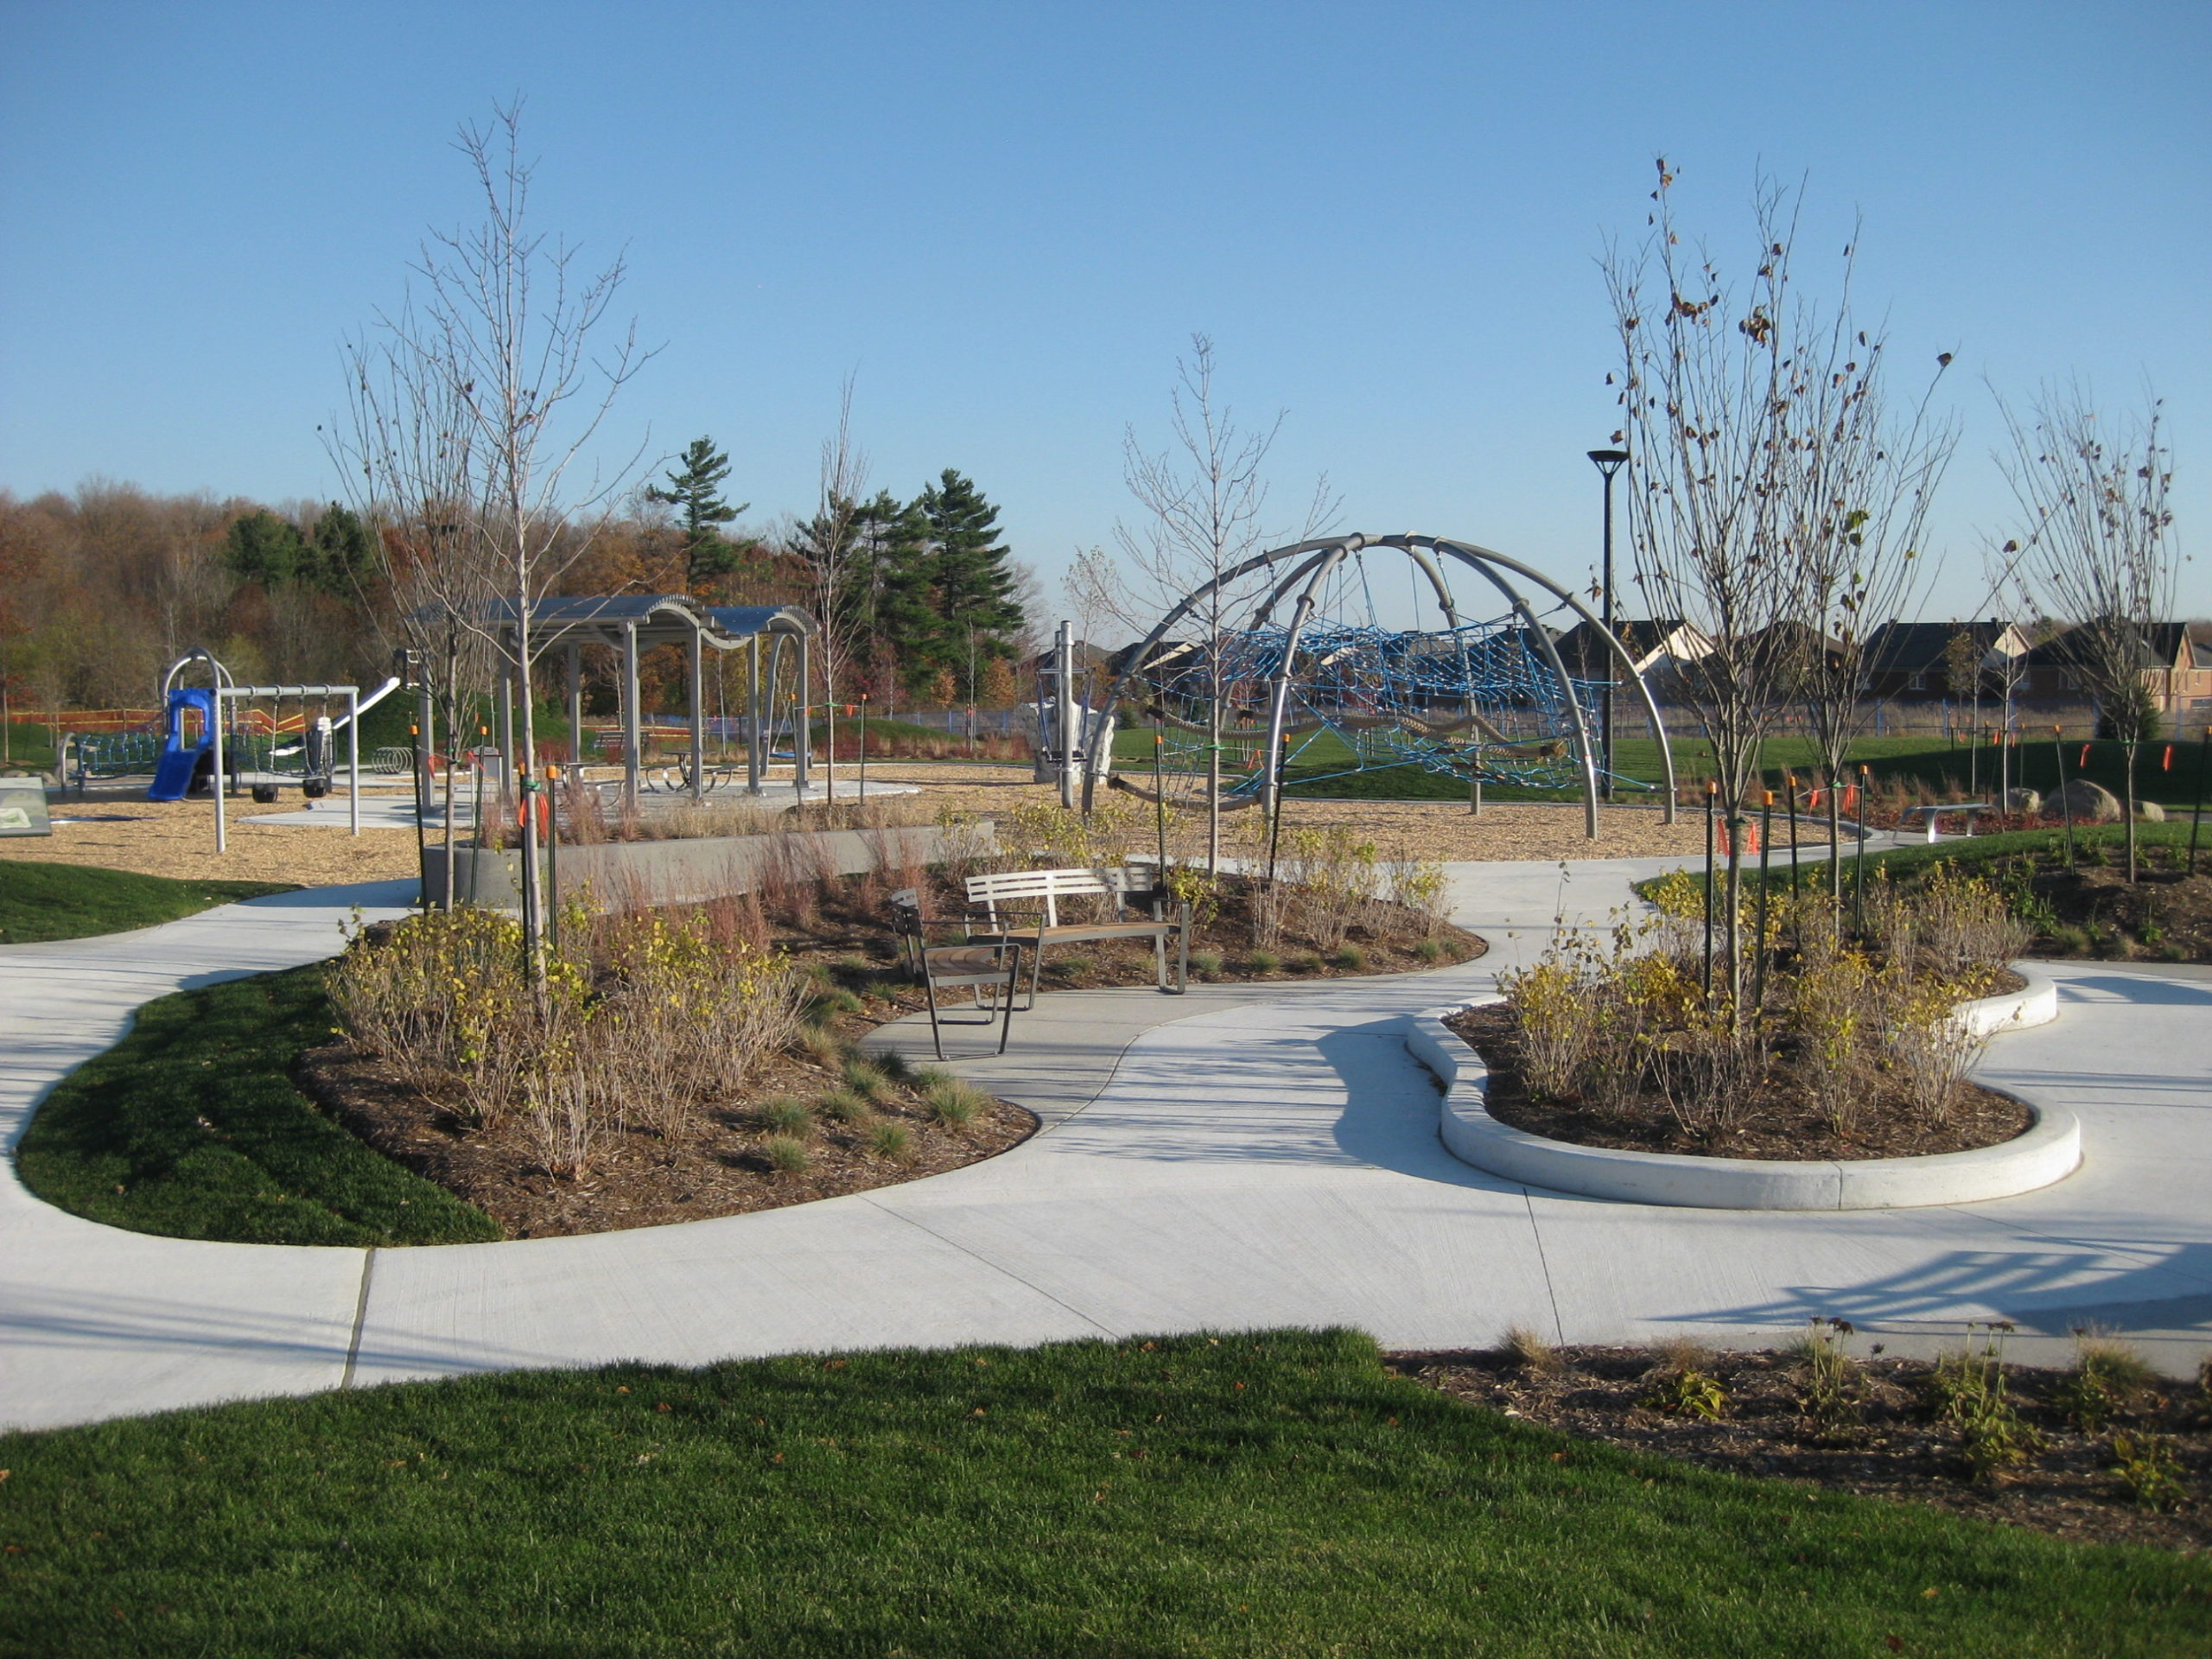 Several meandering paths through park.